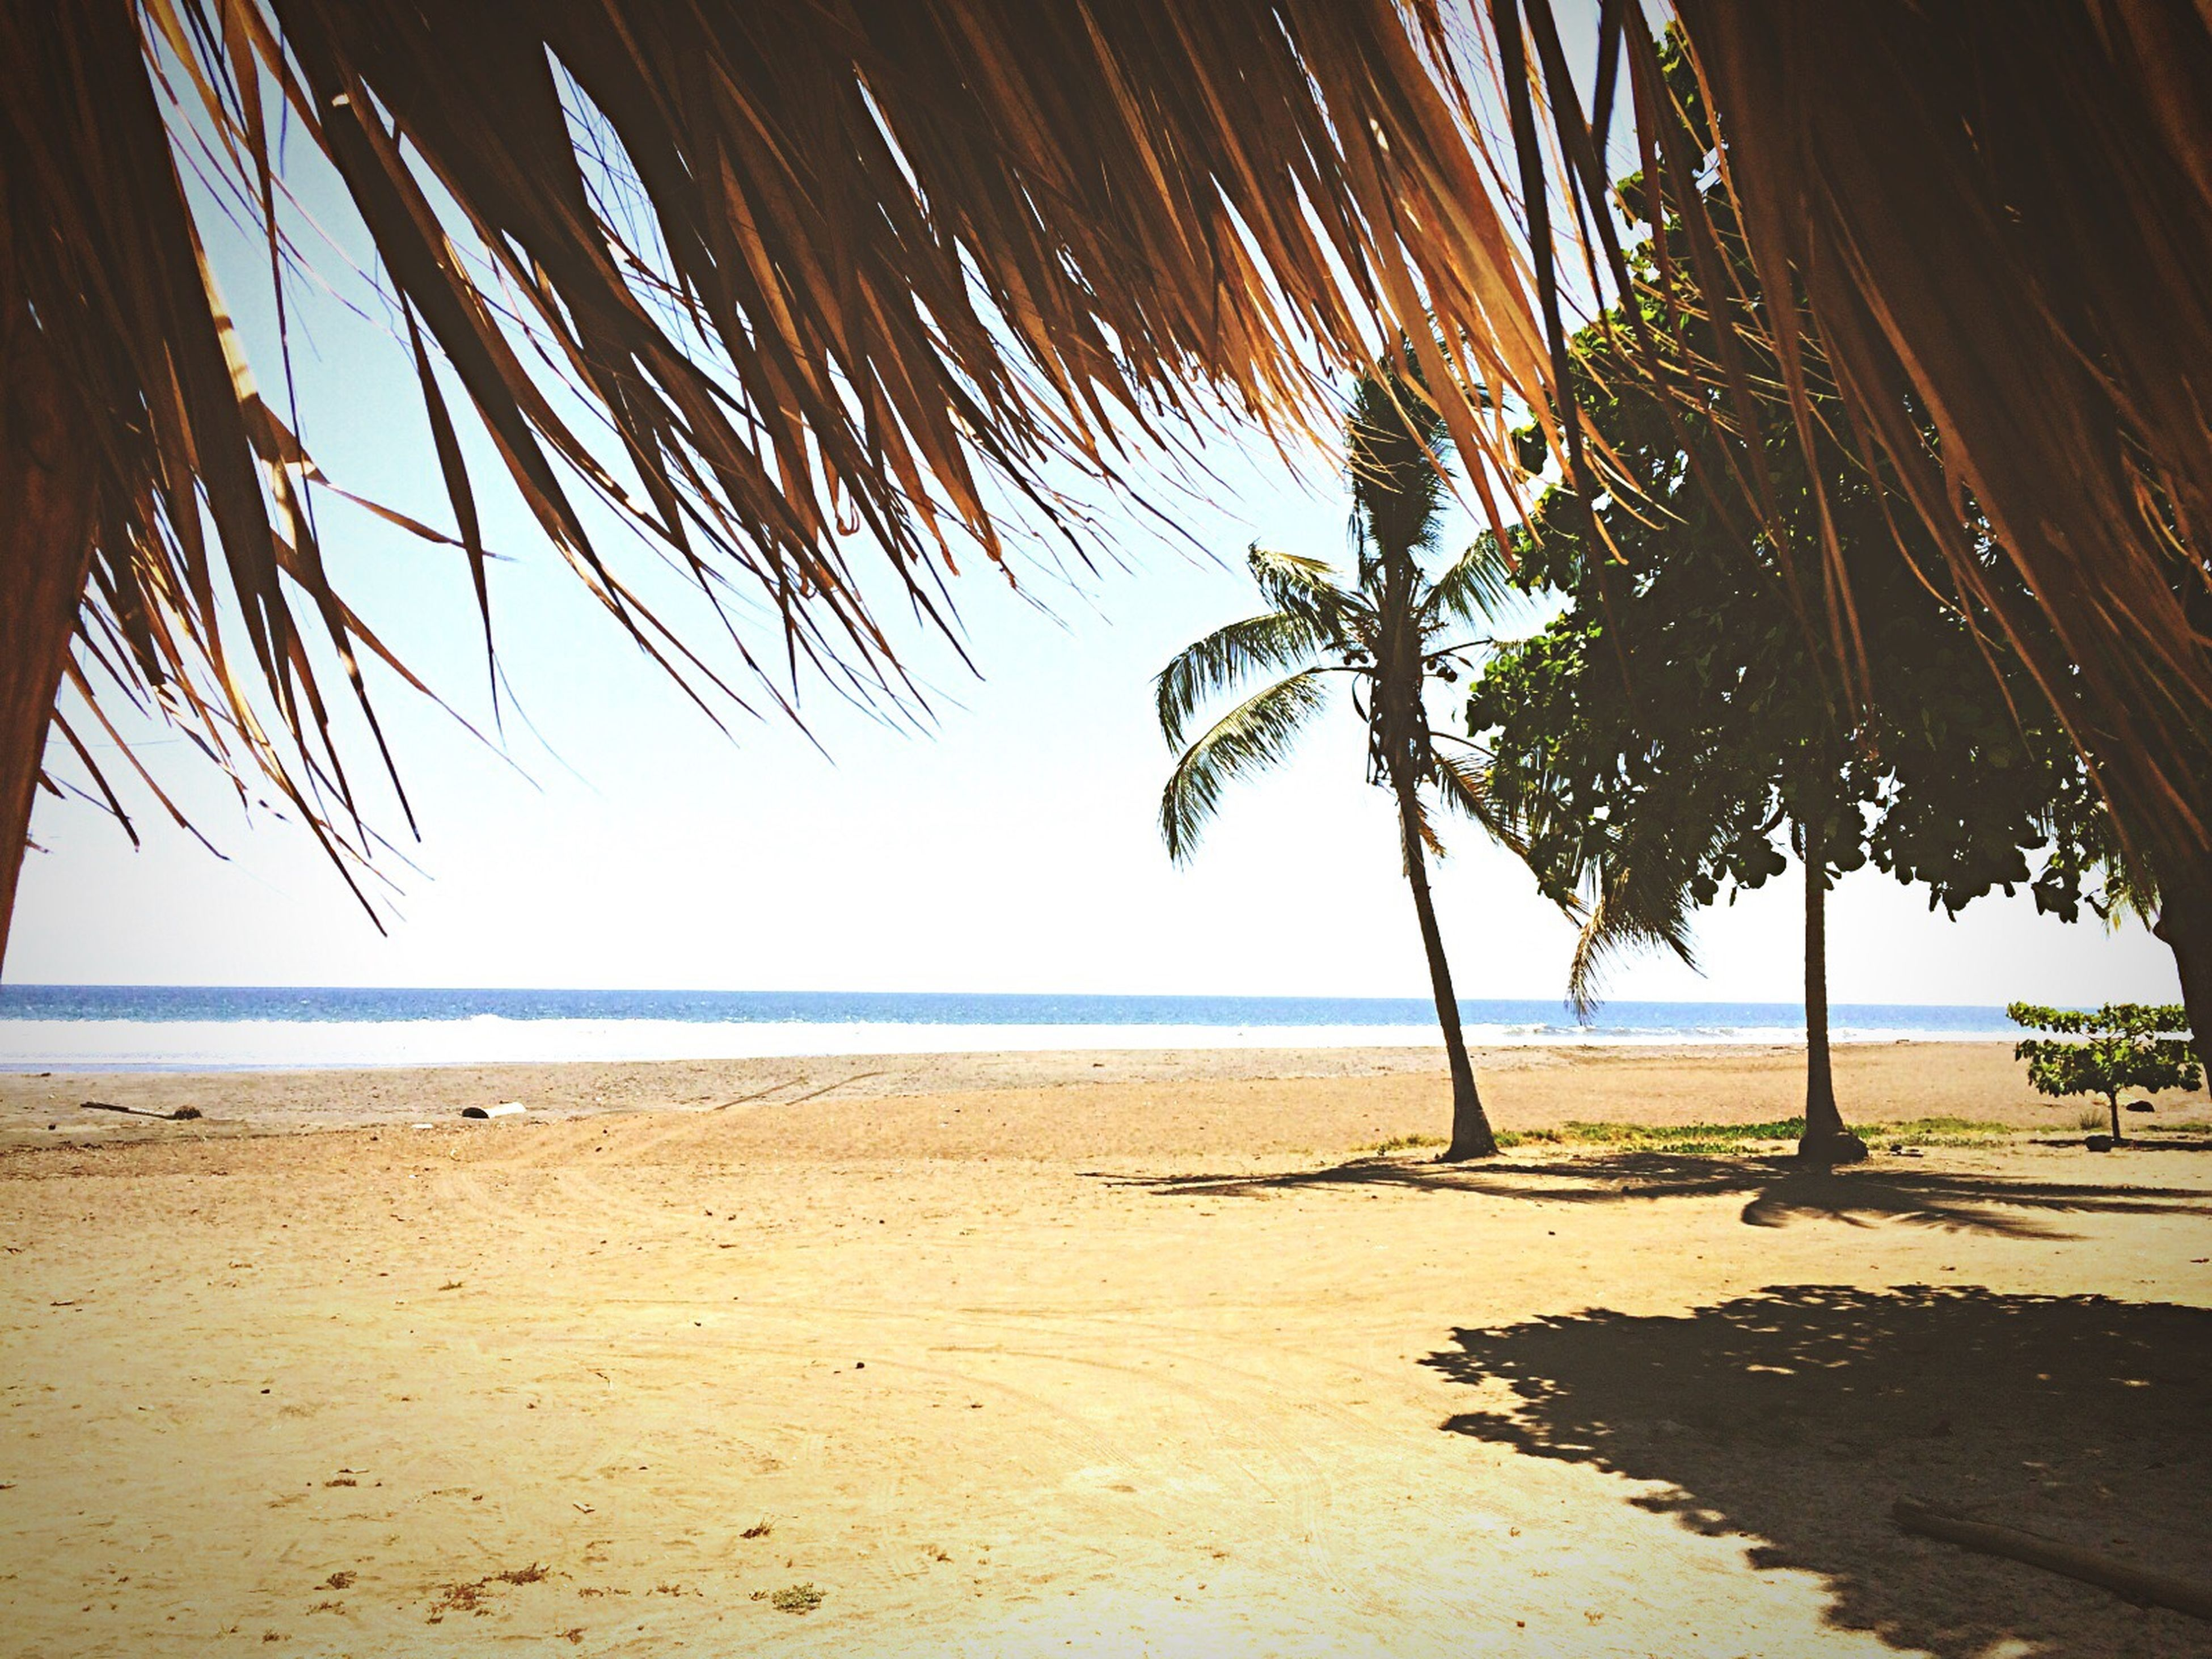 beach, sea, sand, horizon over water, shore, palm tree, tranquility, tranquil scene, water, tree, scenics, beauty in nature, nature, sky, vacations, incidental people, tree trunk, idyllic, clear sky, shadow